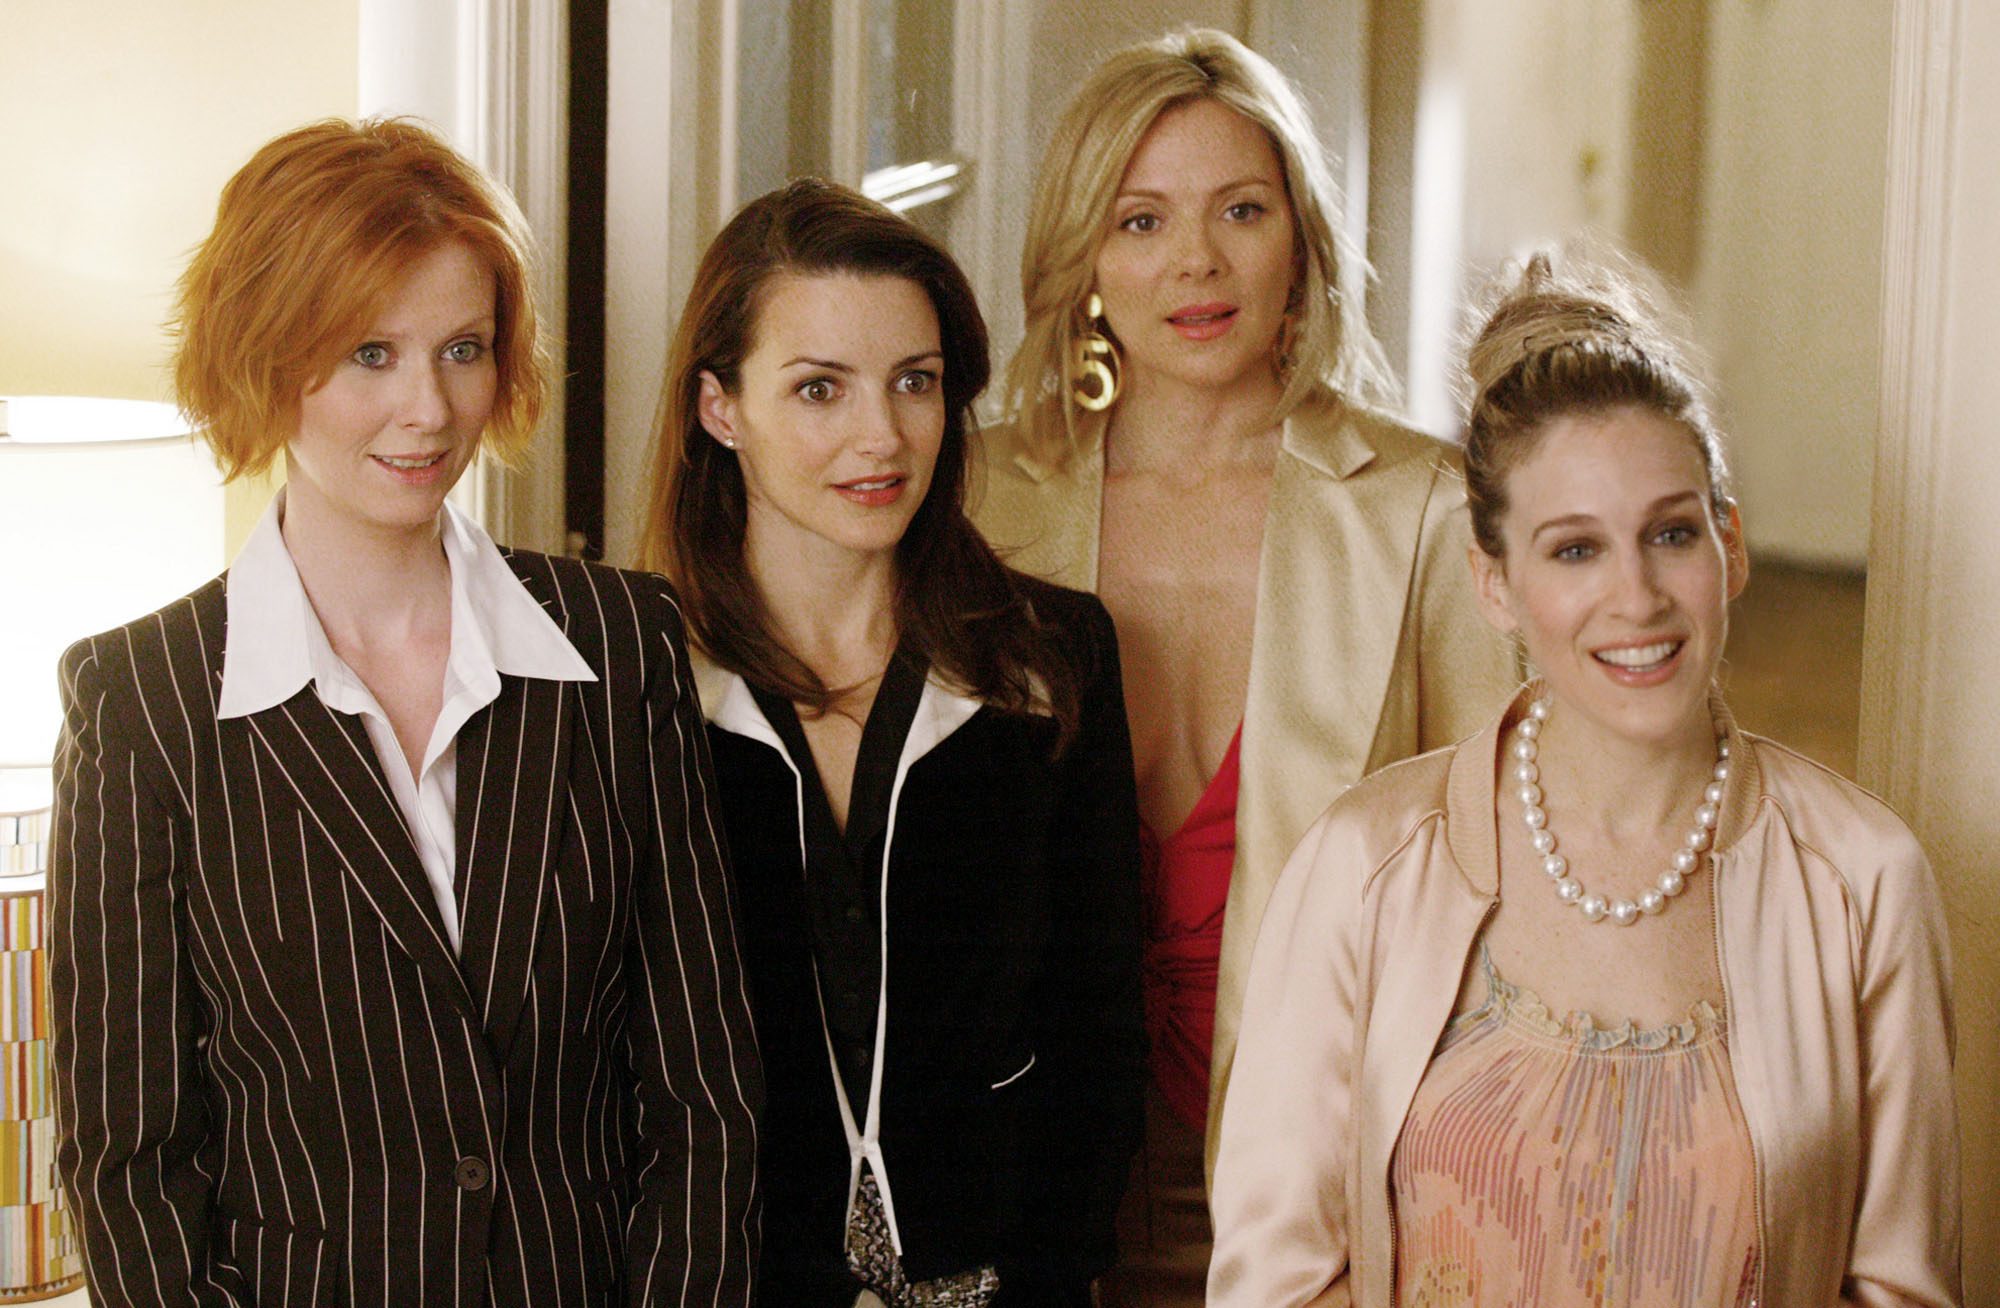 Cynthia Nixon, Kristin Davis, Kim Cattrall and Sarah Jessica Parker in  Sex and the City.